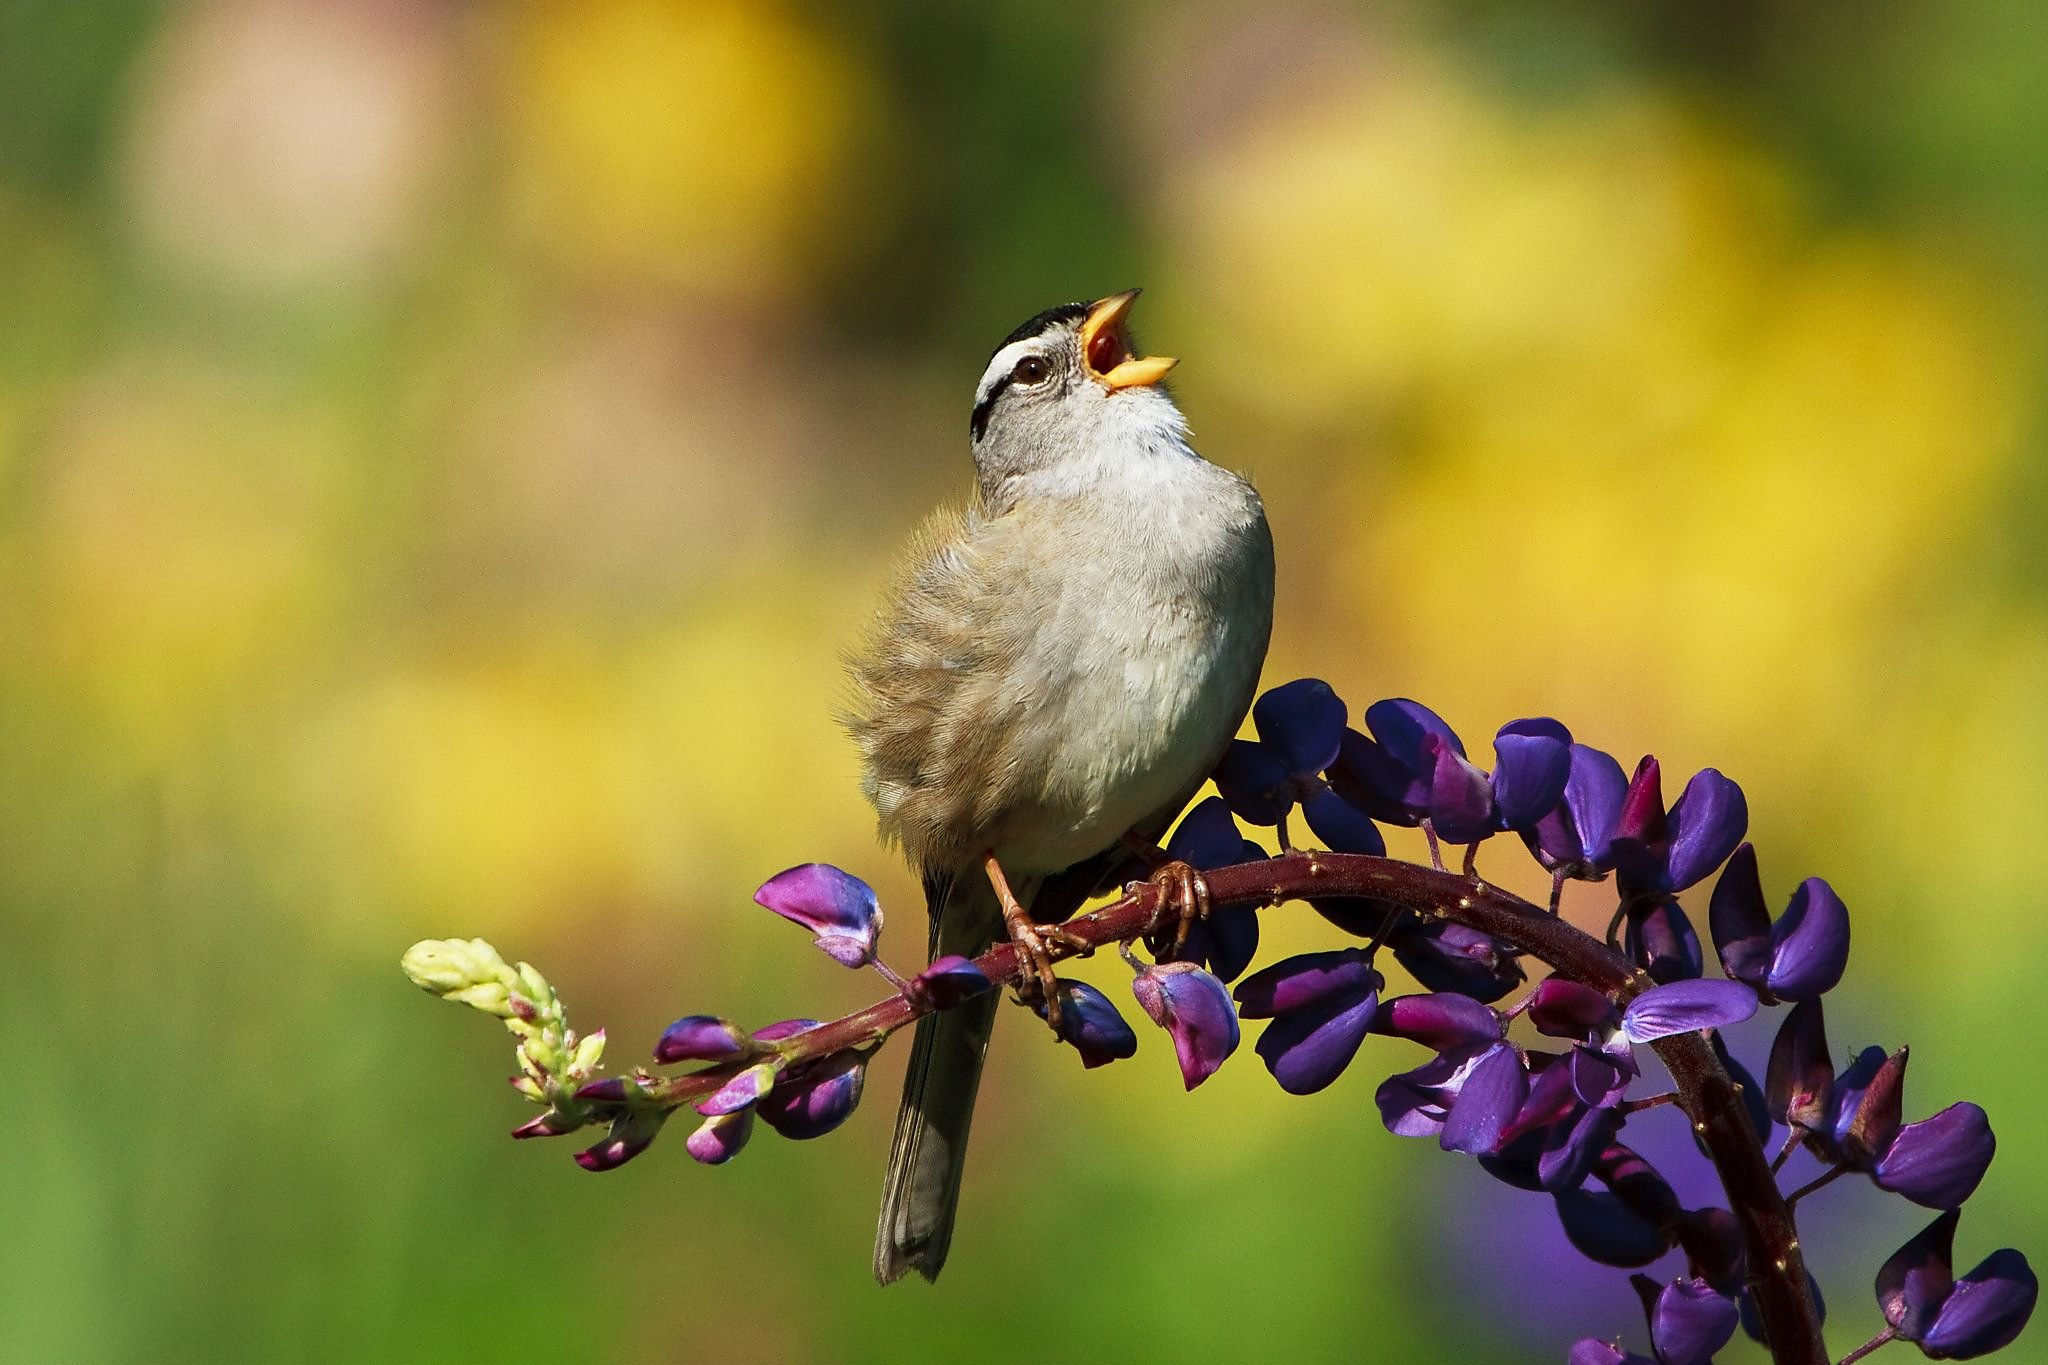 'A sweeter song': Bay Area sparrows thriving hushed cityscapes